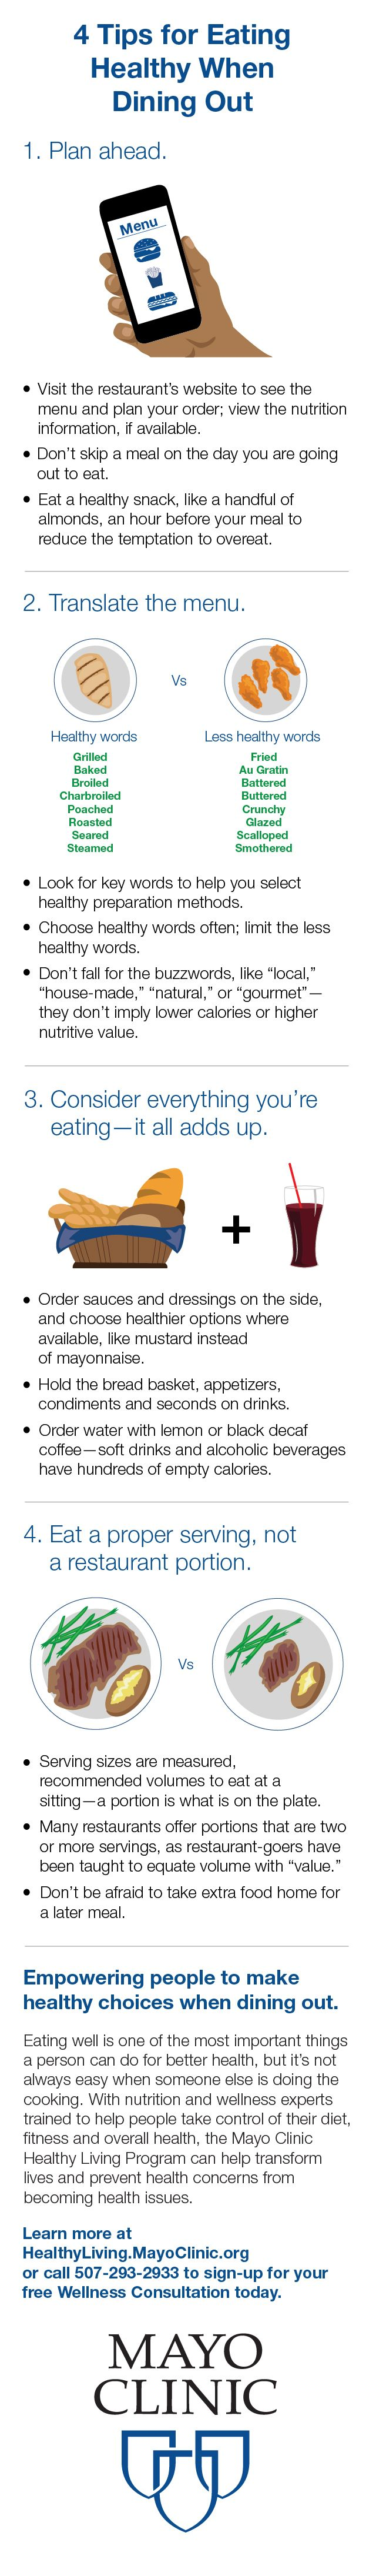 Tips on eating someone out - 4 Tips For Eating Healthy While Dining Out